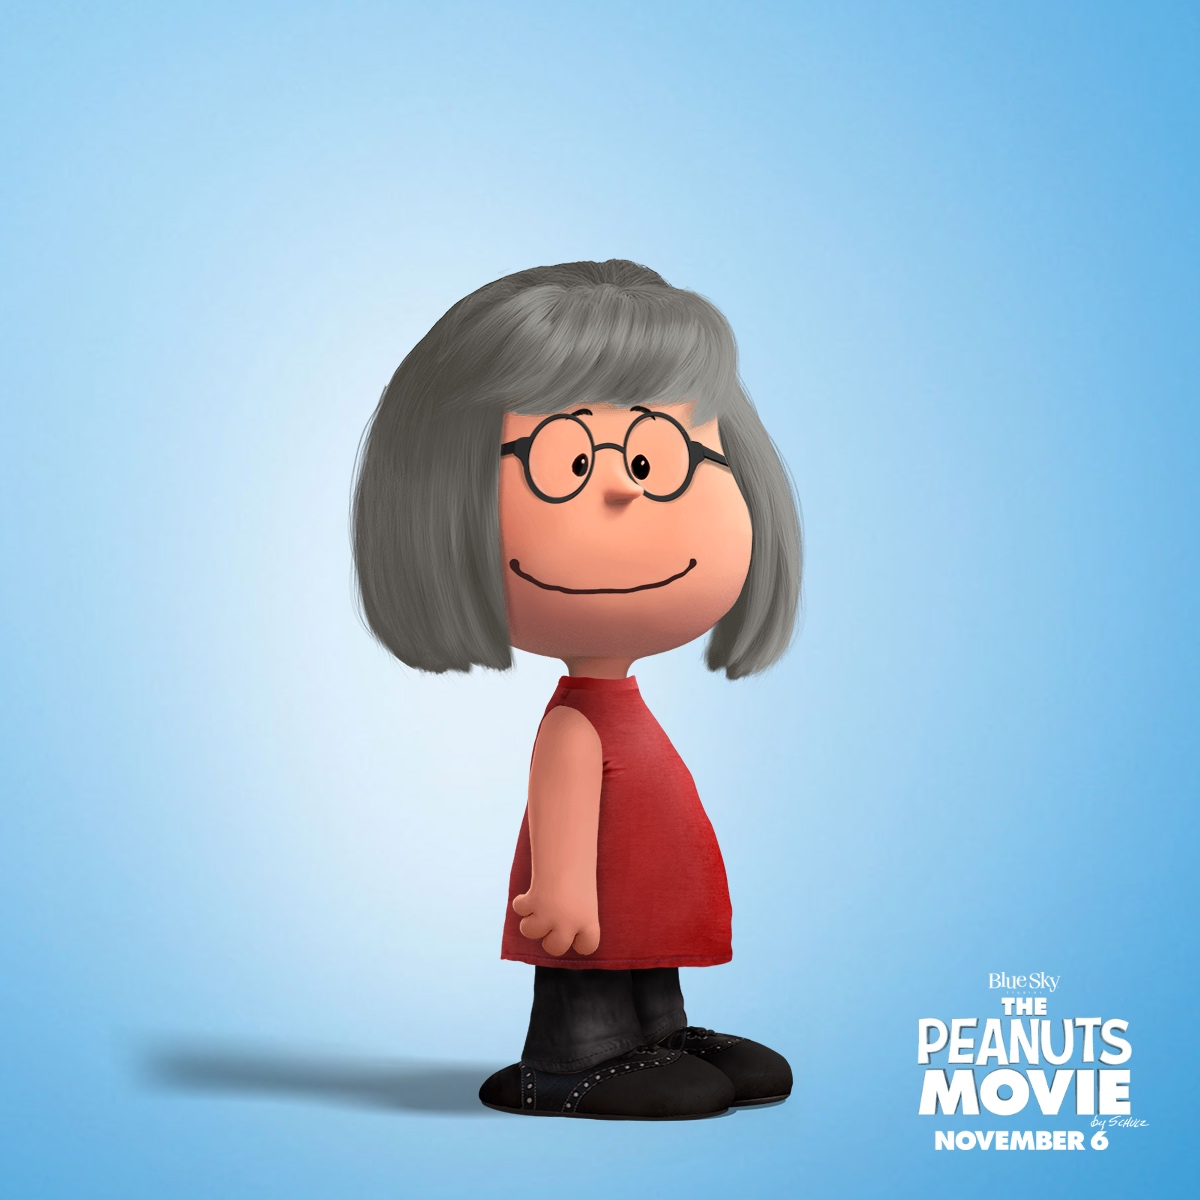 Kelly as a Peanuts Character